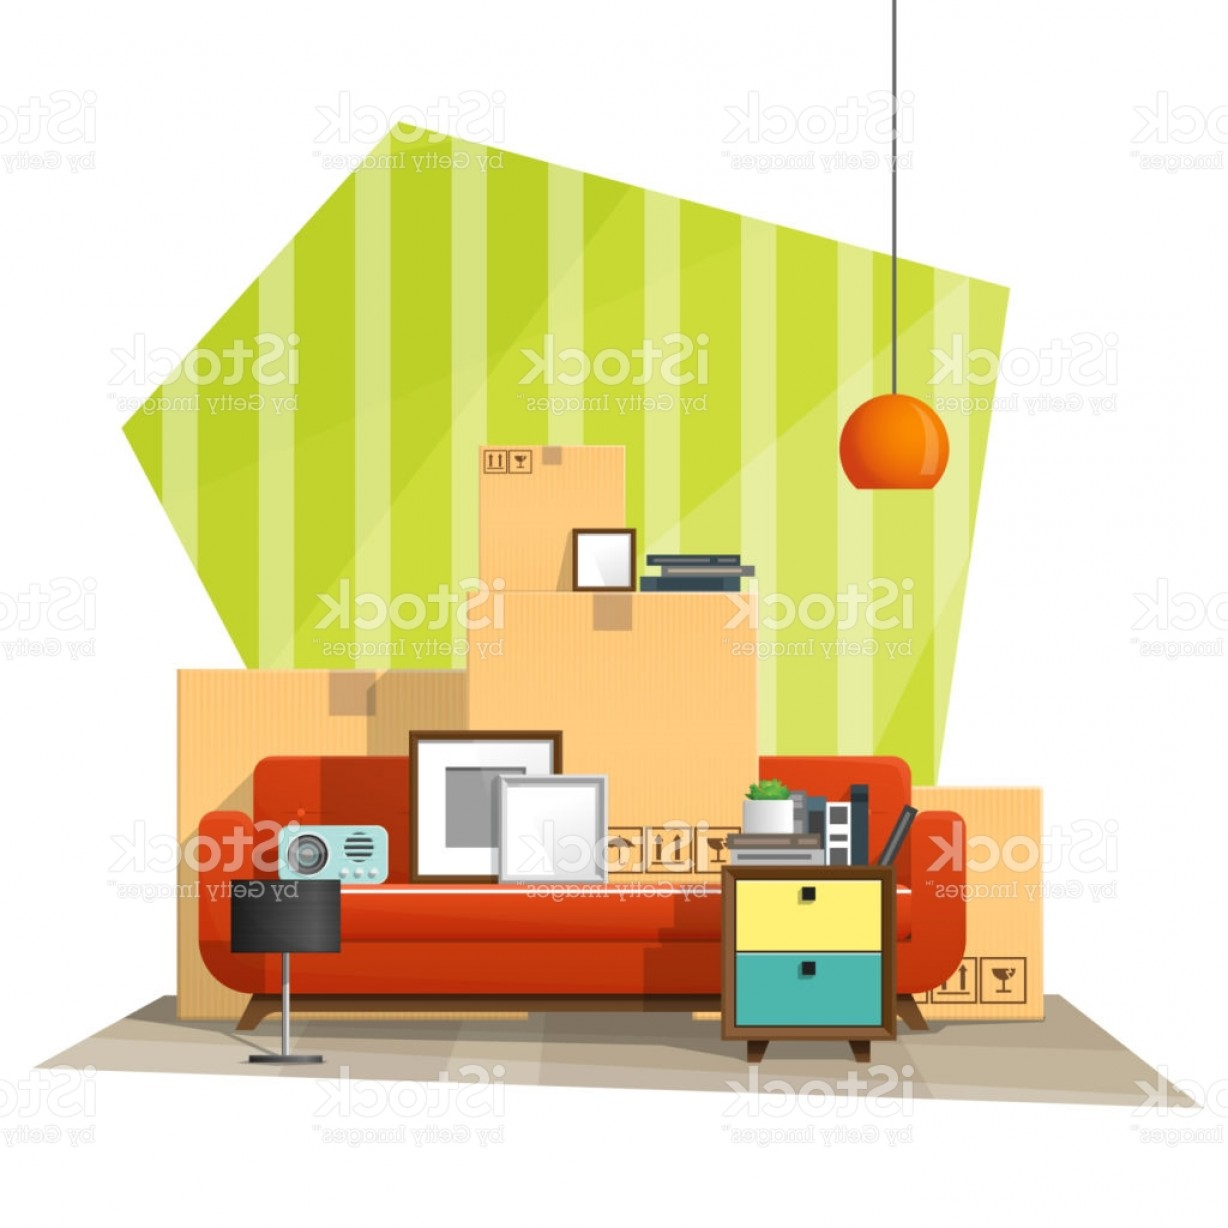 Vector Background For Living Room: Moving Home Concept Background With Cardboard Boxes And Furniture In New Living Room Gm